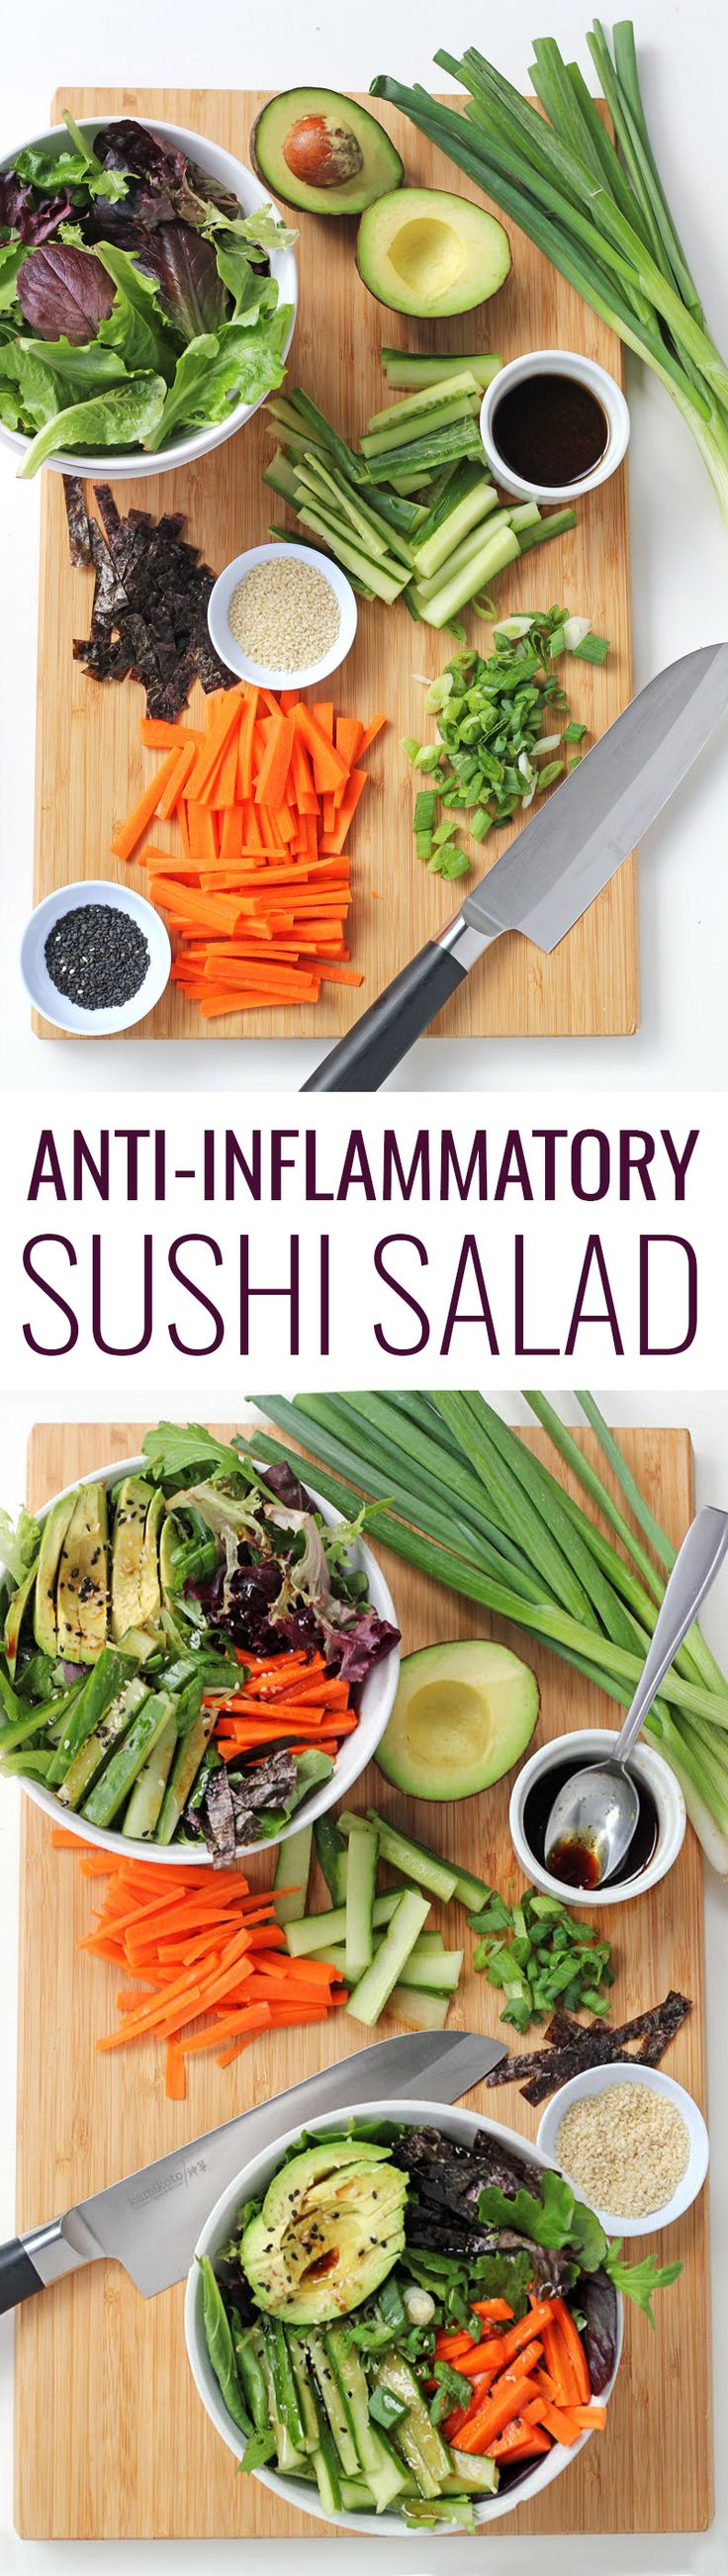 Anti-inflammatory Sushi Salad Recipe - such a delicious and easy meal, especially if you're feeling lazy and don't want to roll sushi by hand!